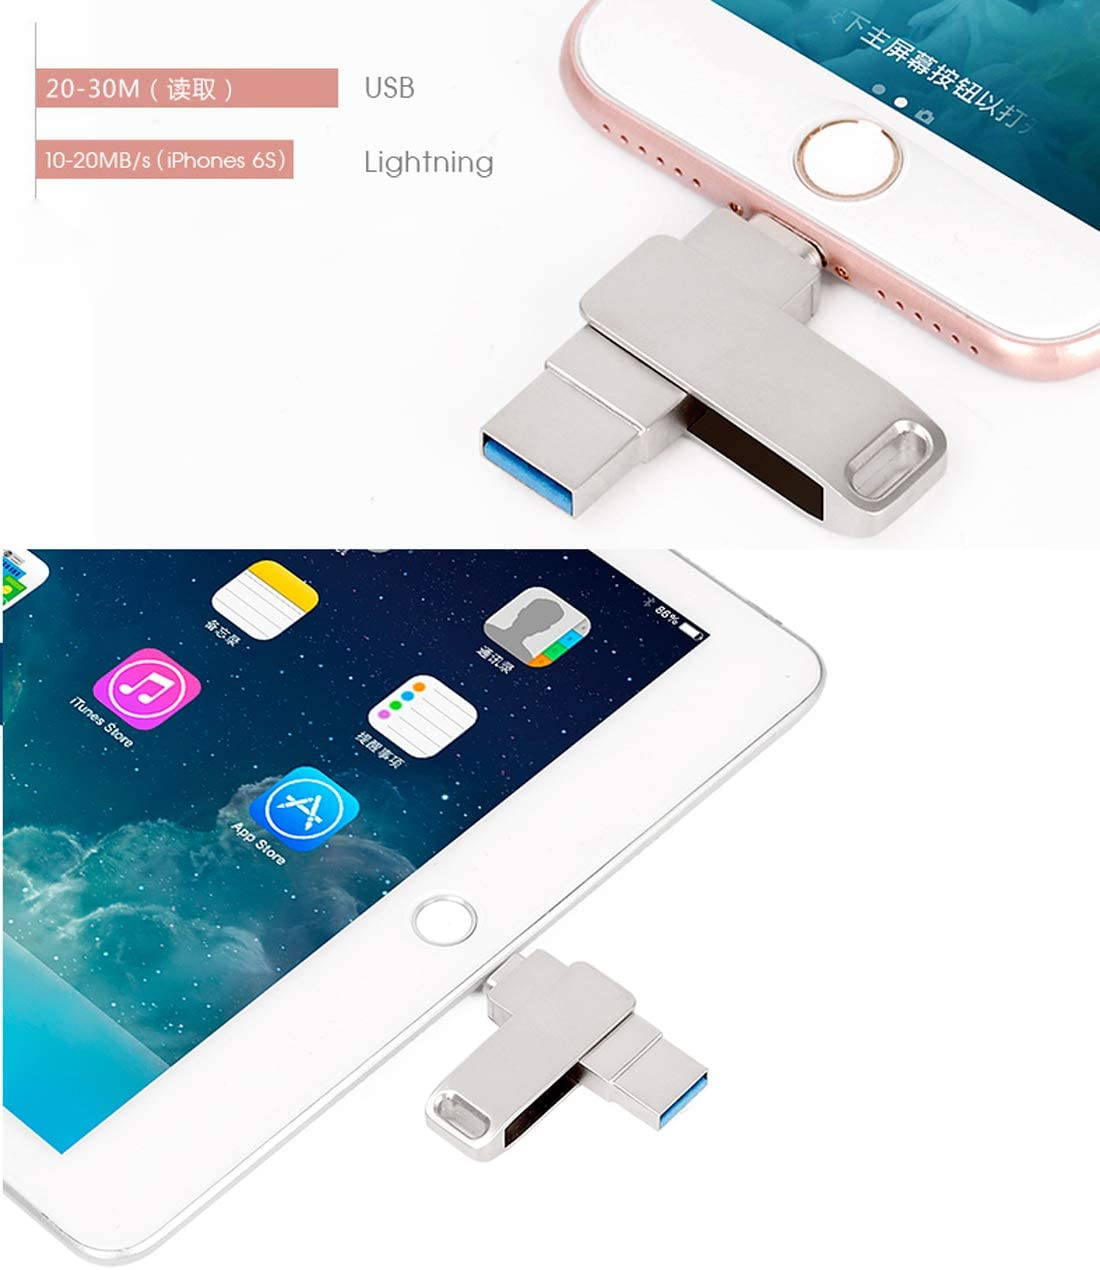 Flash Drive USB 3.0 Memory Stick with Extended Connector Compatible iPod iOS Windows PC Mac OTG Pen Drive for iPhone iPad 128GB Y45